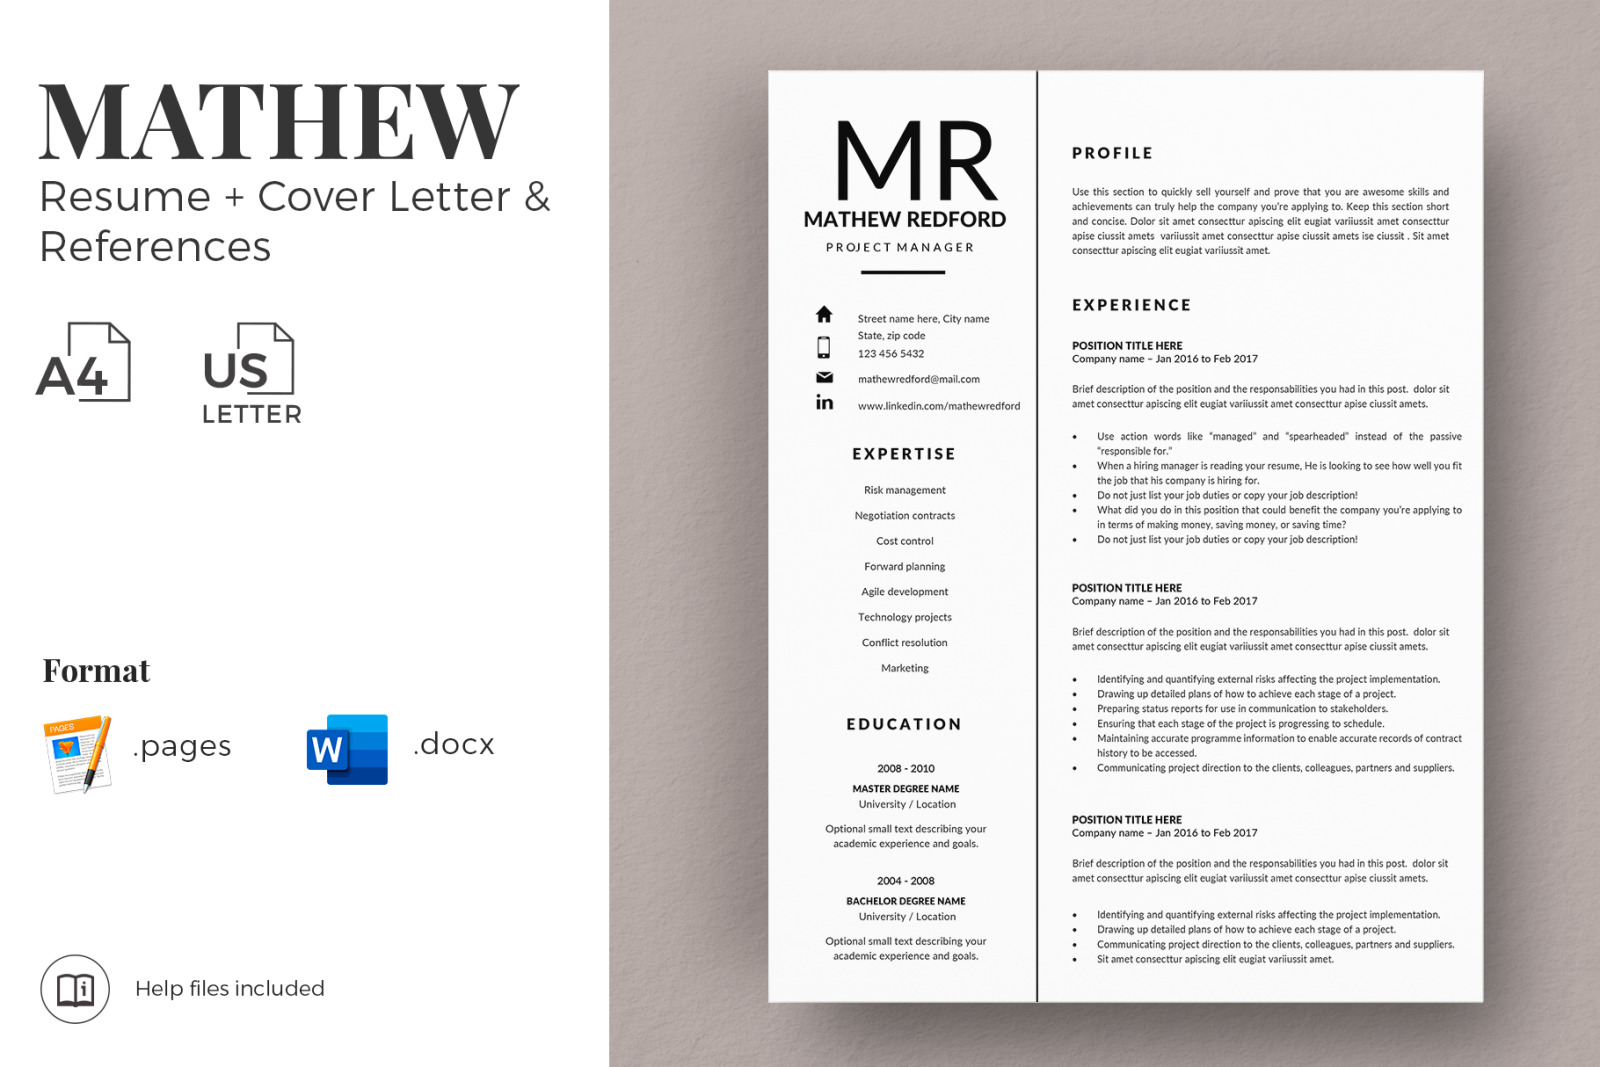 Bring your ideas to life with microsoft 365. Minimalist Resume Cv For Word Mac Pages Project Manager Resume Cover Letter Instant Download In Resume Templates On Yellow Images Creative Store